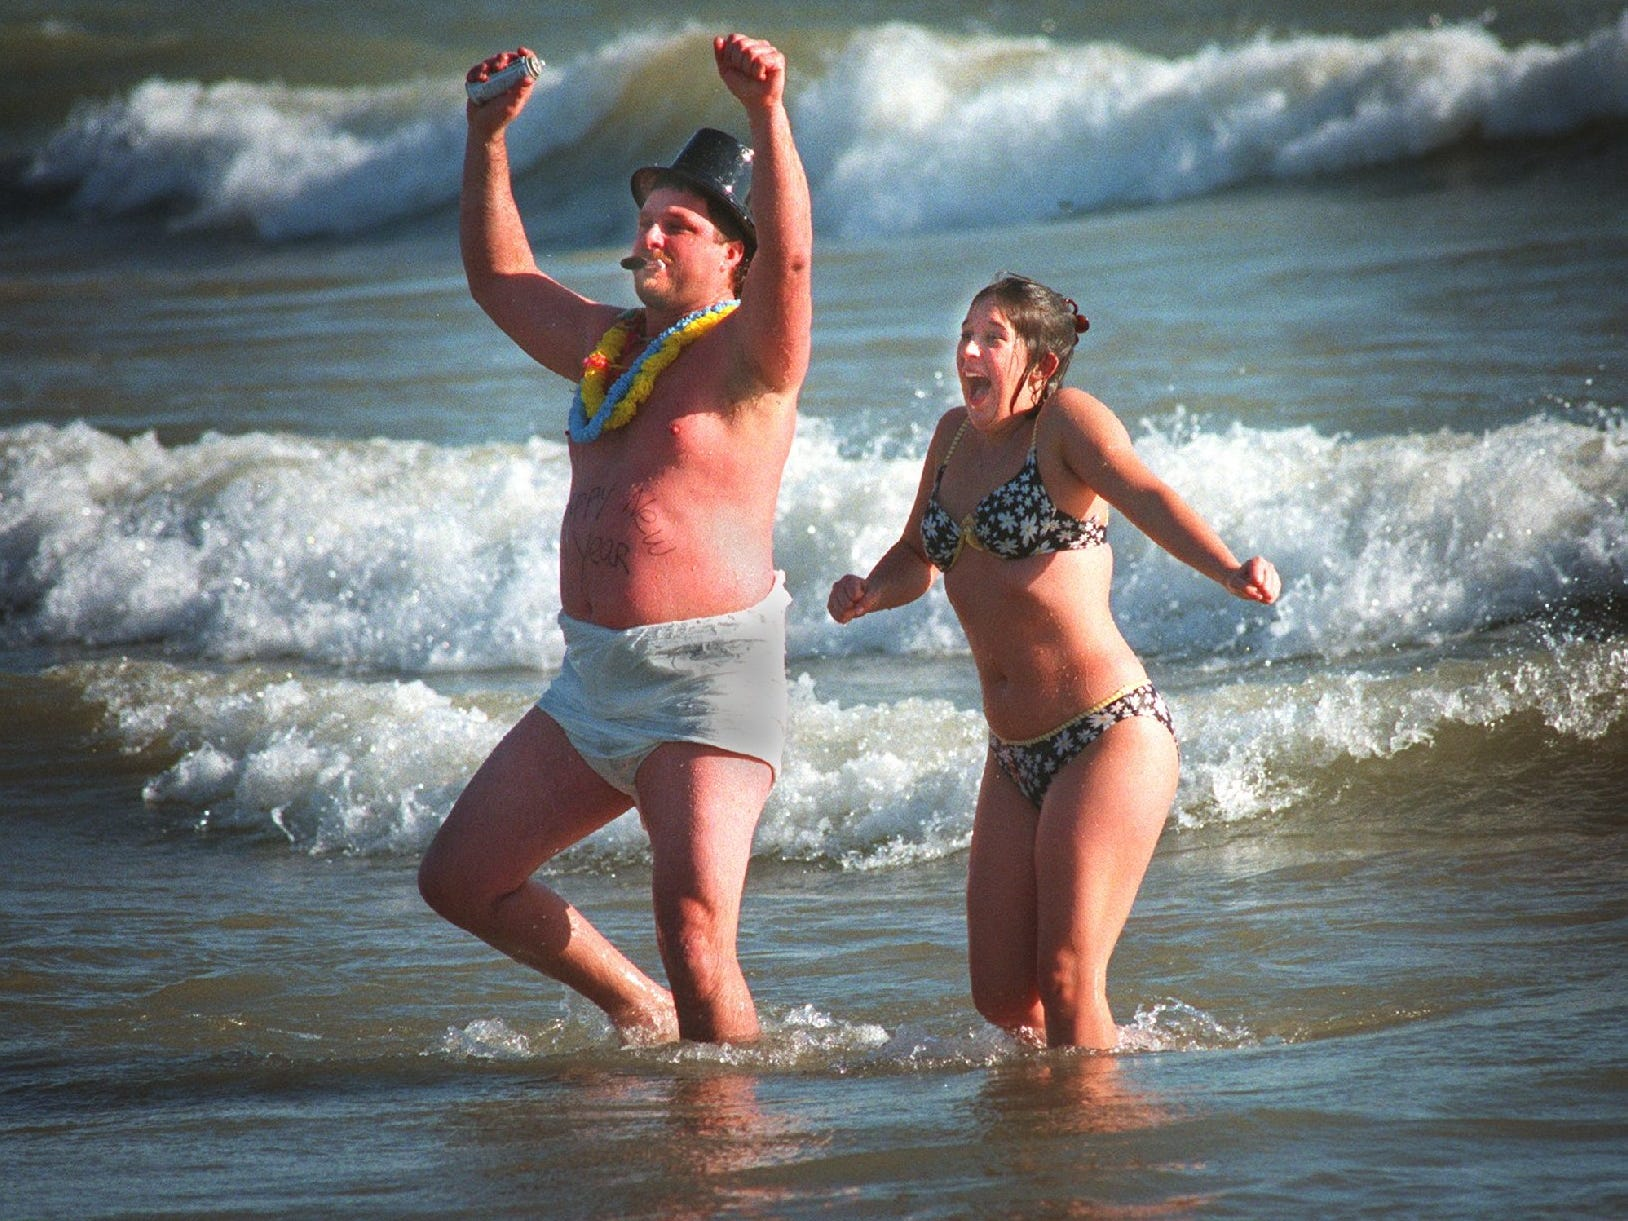 Dave Finses and Dana Smith have different perspectives on the icy water of Lake Michigan during the Polar Bear Plunge at Bradford Beach on Jan. 1, 1998.